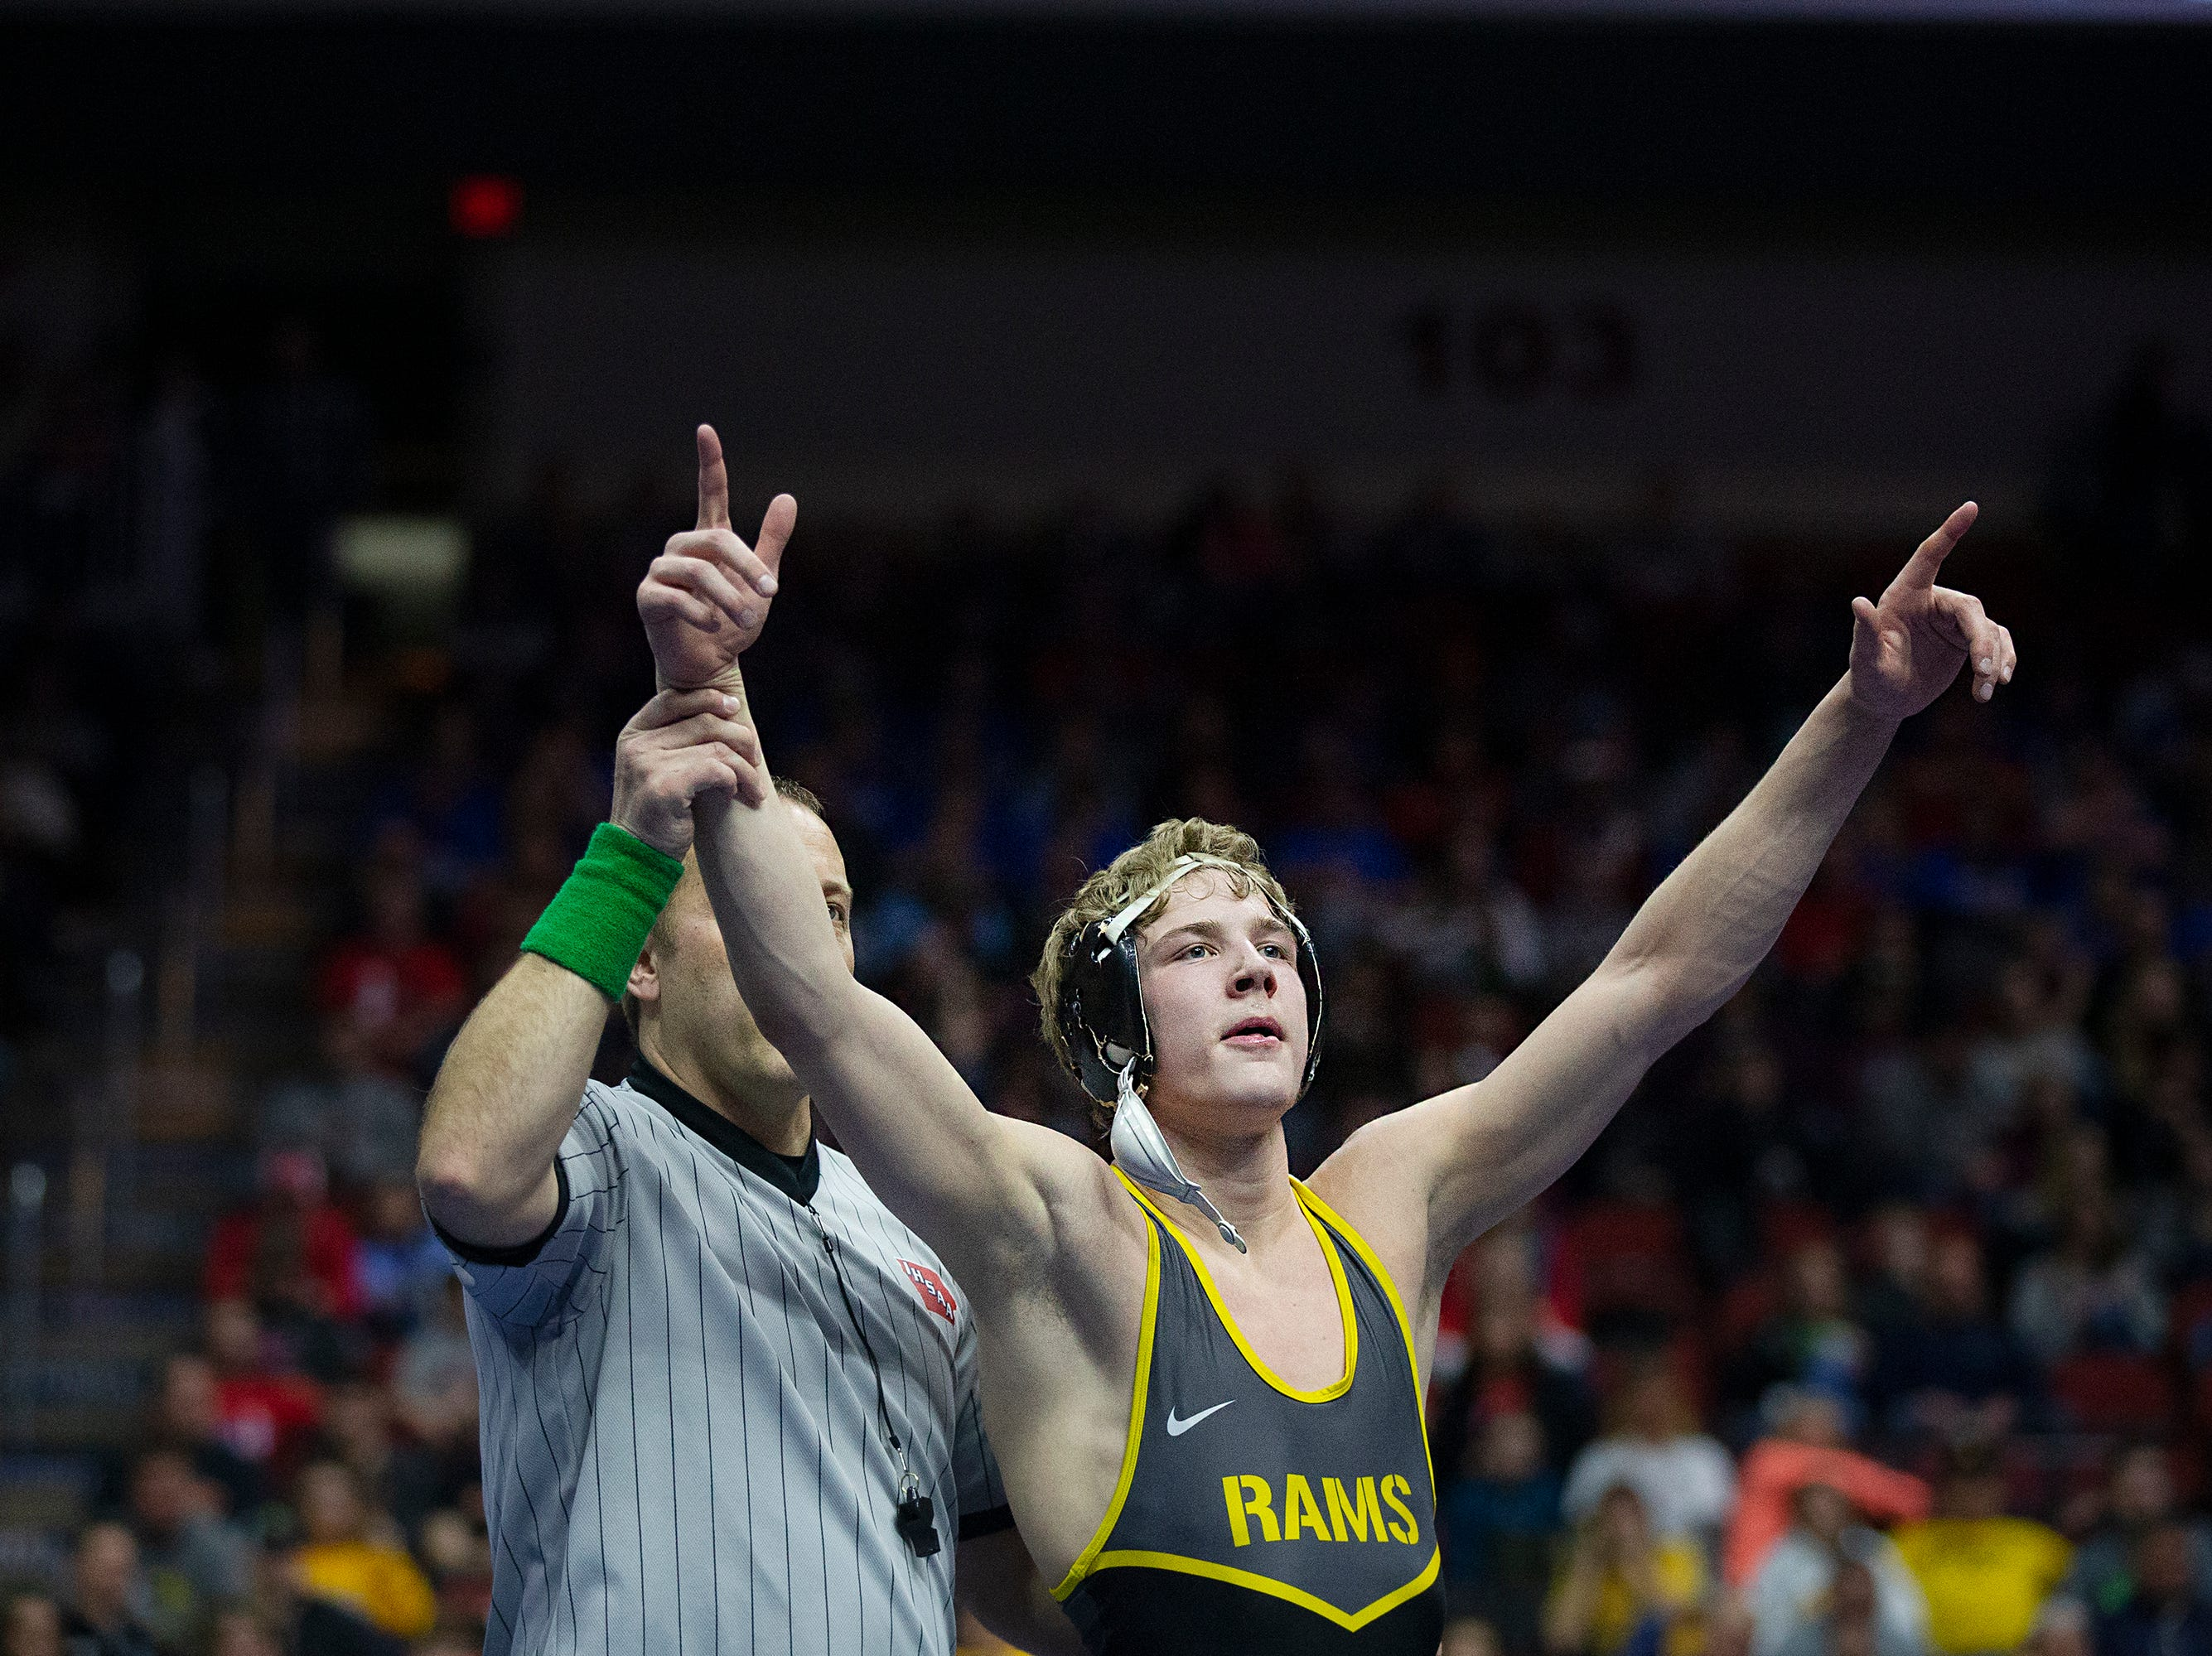 Southeast Polk's Lance Runyon wins the 152 pound class 3A championship match against Norwalk's Carter Schmidt during the Iowa high school state wrestling tournament on Saturday, Feb.16, 2019, in Wells Fargo Arena.